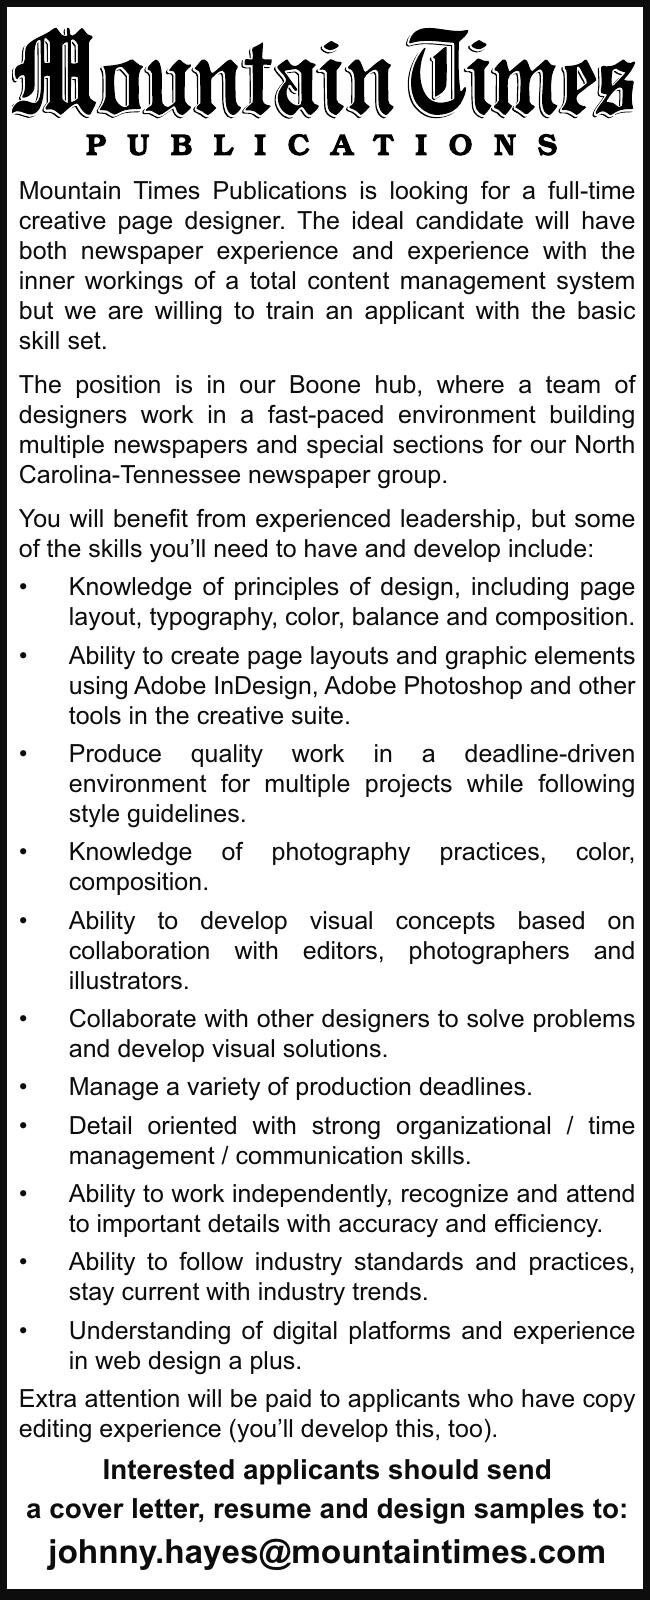 Mountain Times Publications is looking for a full-time